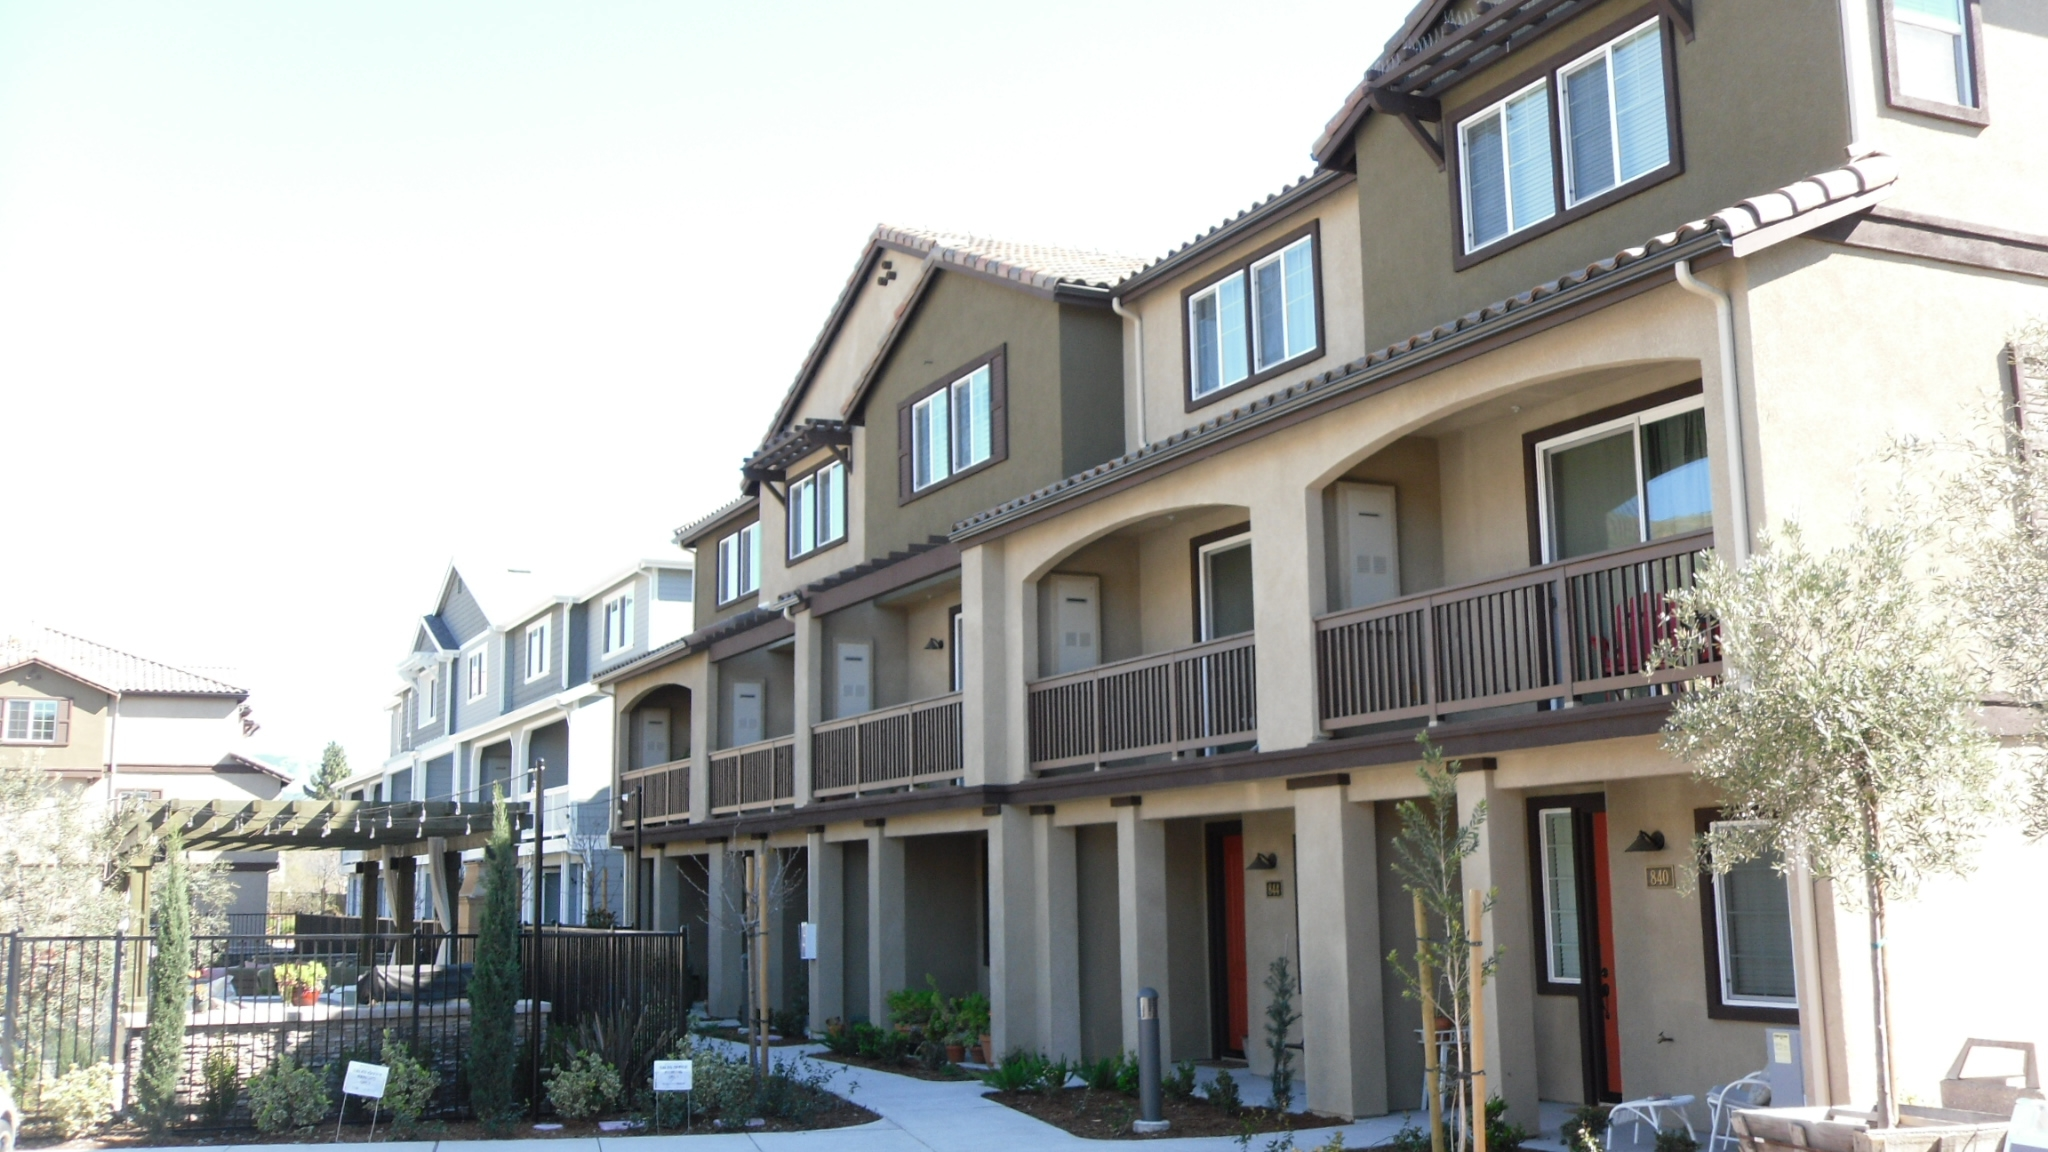 THE VILLAS AT LAUREL CREEK , PHASE IV  - SAN LUIS OBISPO, CA  Phase IV of the Villas at Laurel Creek consists of nine, three-story condominium buildings with 38 total residential units. Highly expansive underlying soils required a foundation system consisting of post-tensioned slab-on-grade construction. Praxis teamed with Montage Development to provide structural engineering design and construction phase services and worked closely with Suncoast Post-Tension to coordinate the design of the foundation with the superstructure above.  Structural Engineering Design